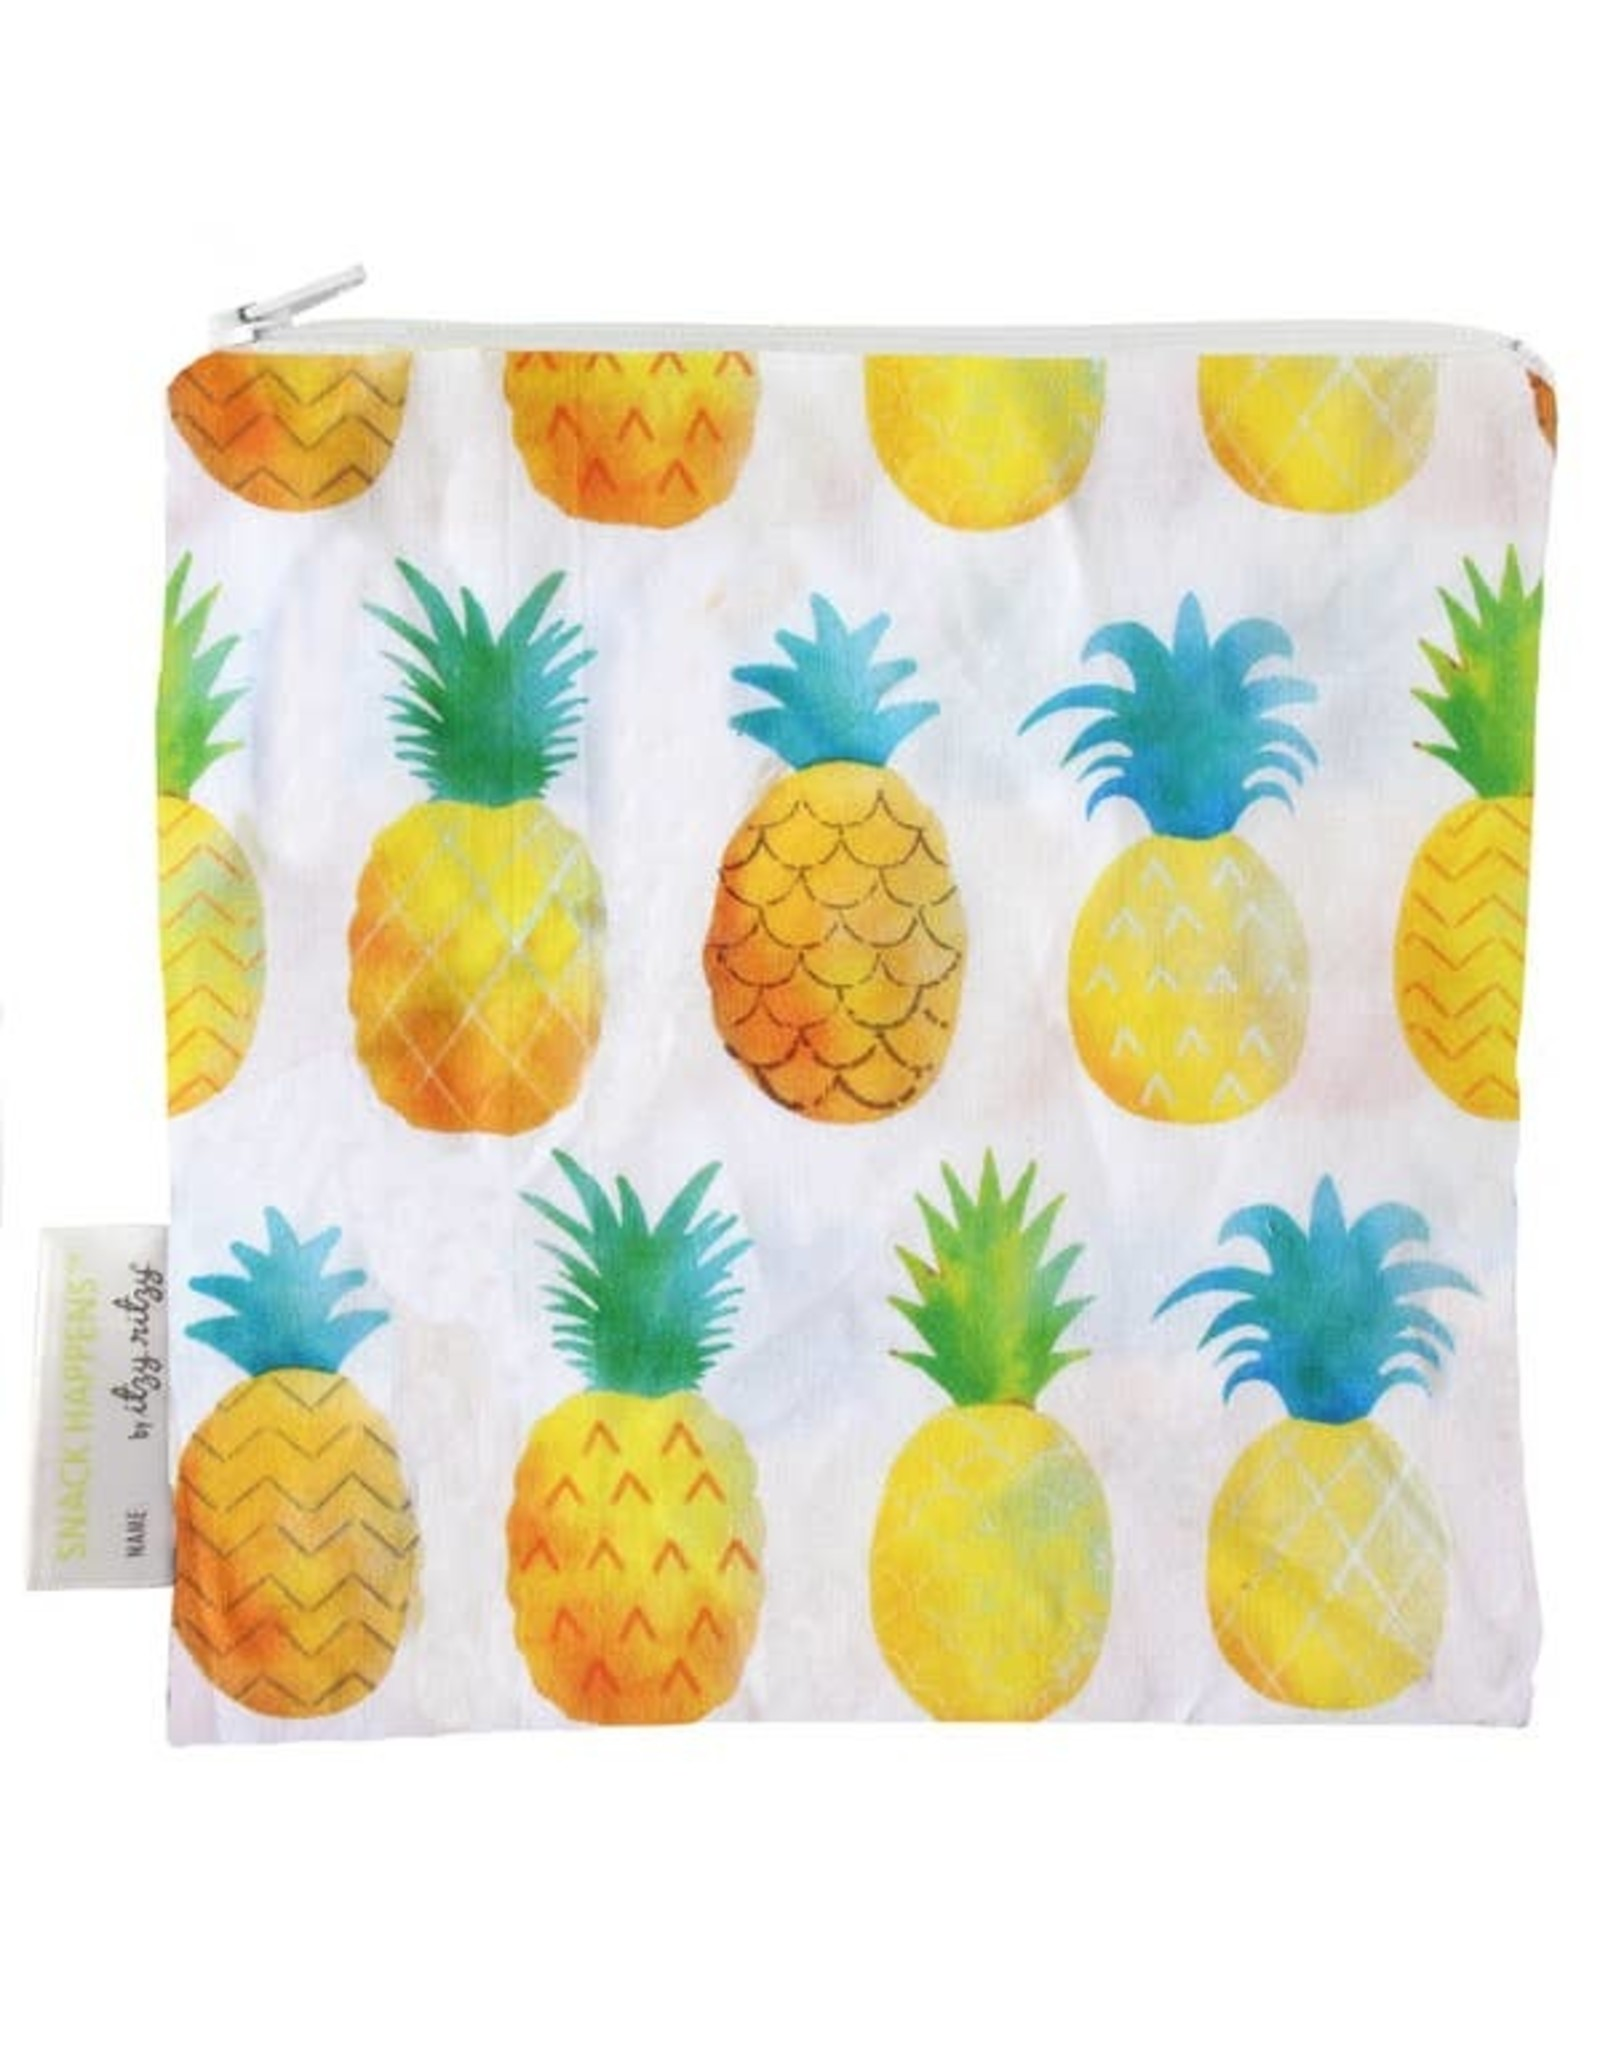 Itzy Ritzy Reusable Snack Bag, Pineapple